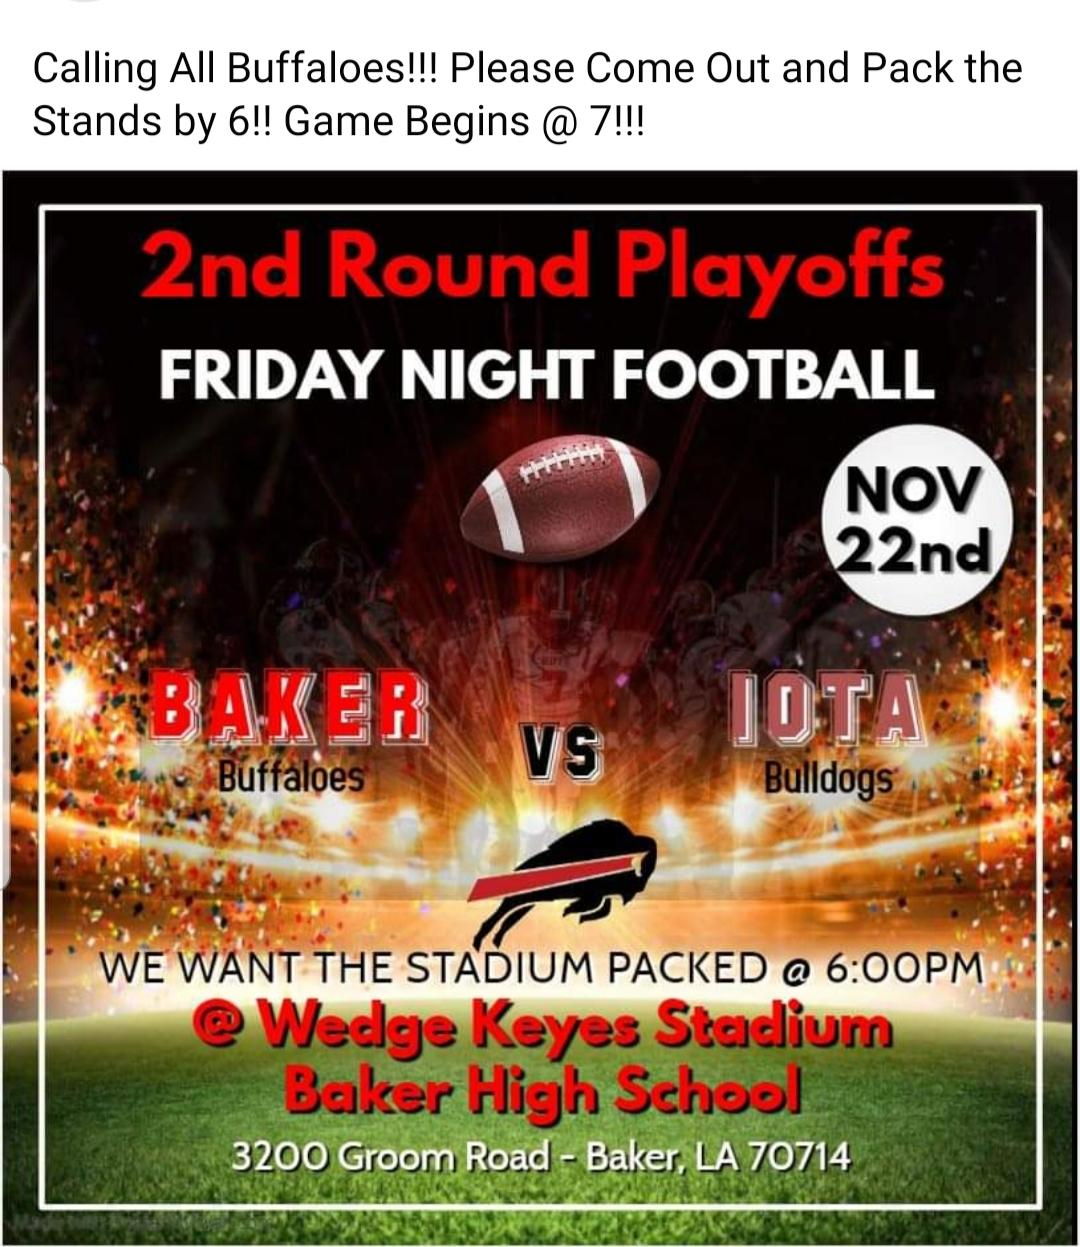 A photo of flyer promoting the Baker High School 2nd Round Playoff Game